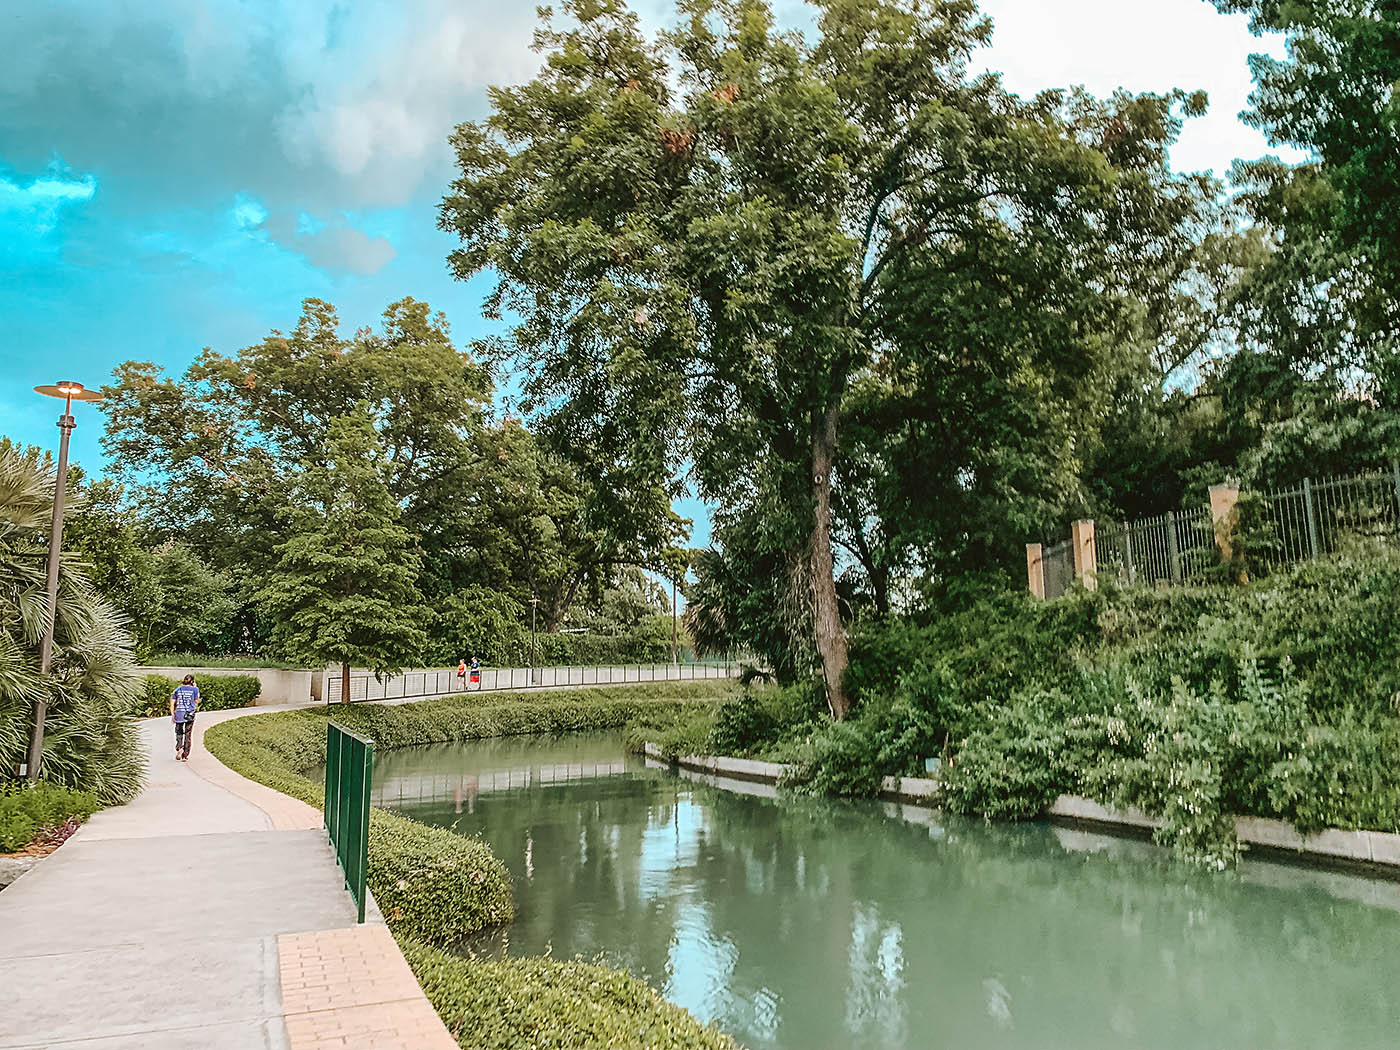 View of the river walk in San Antonio with trees